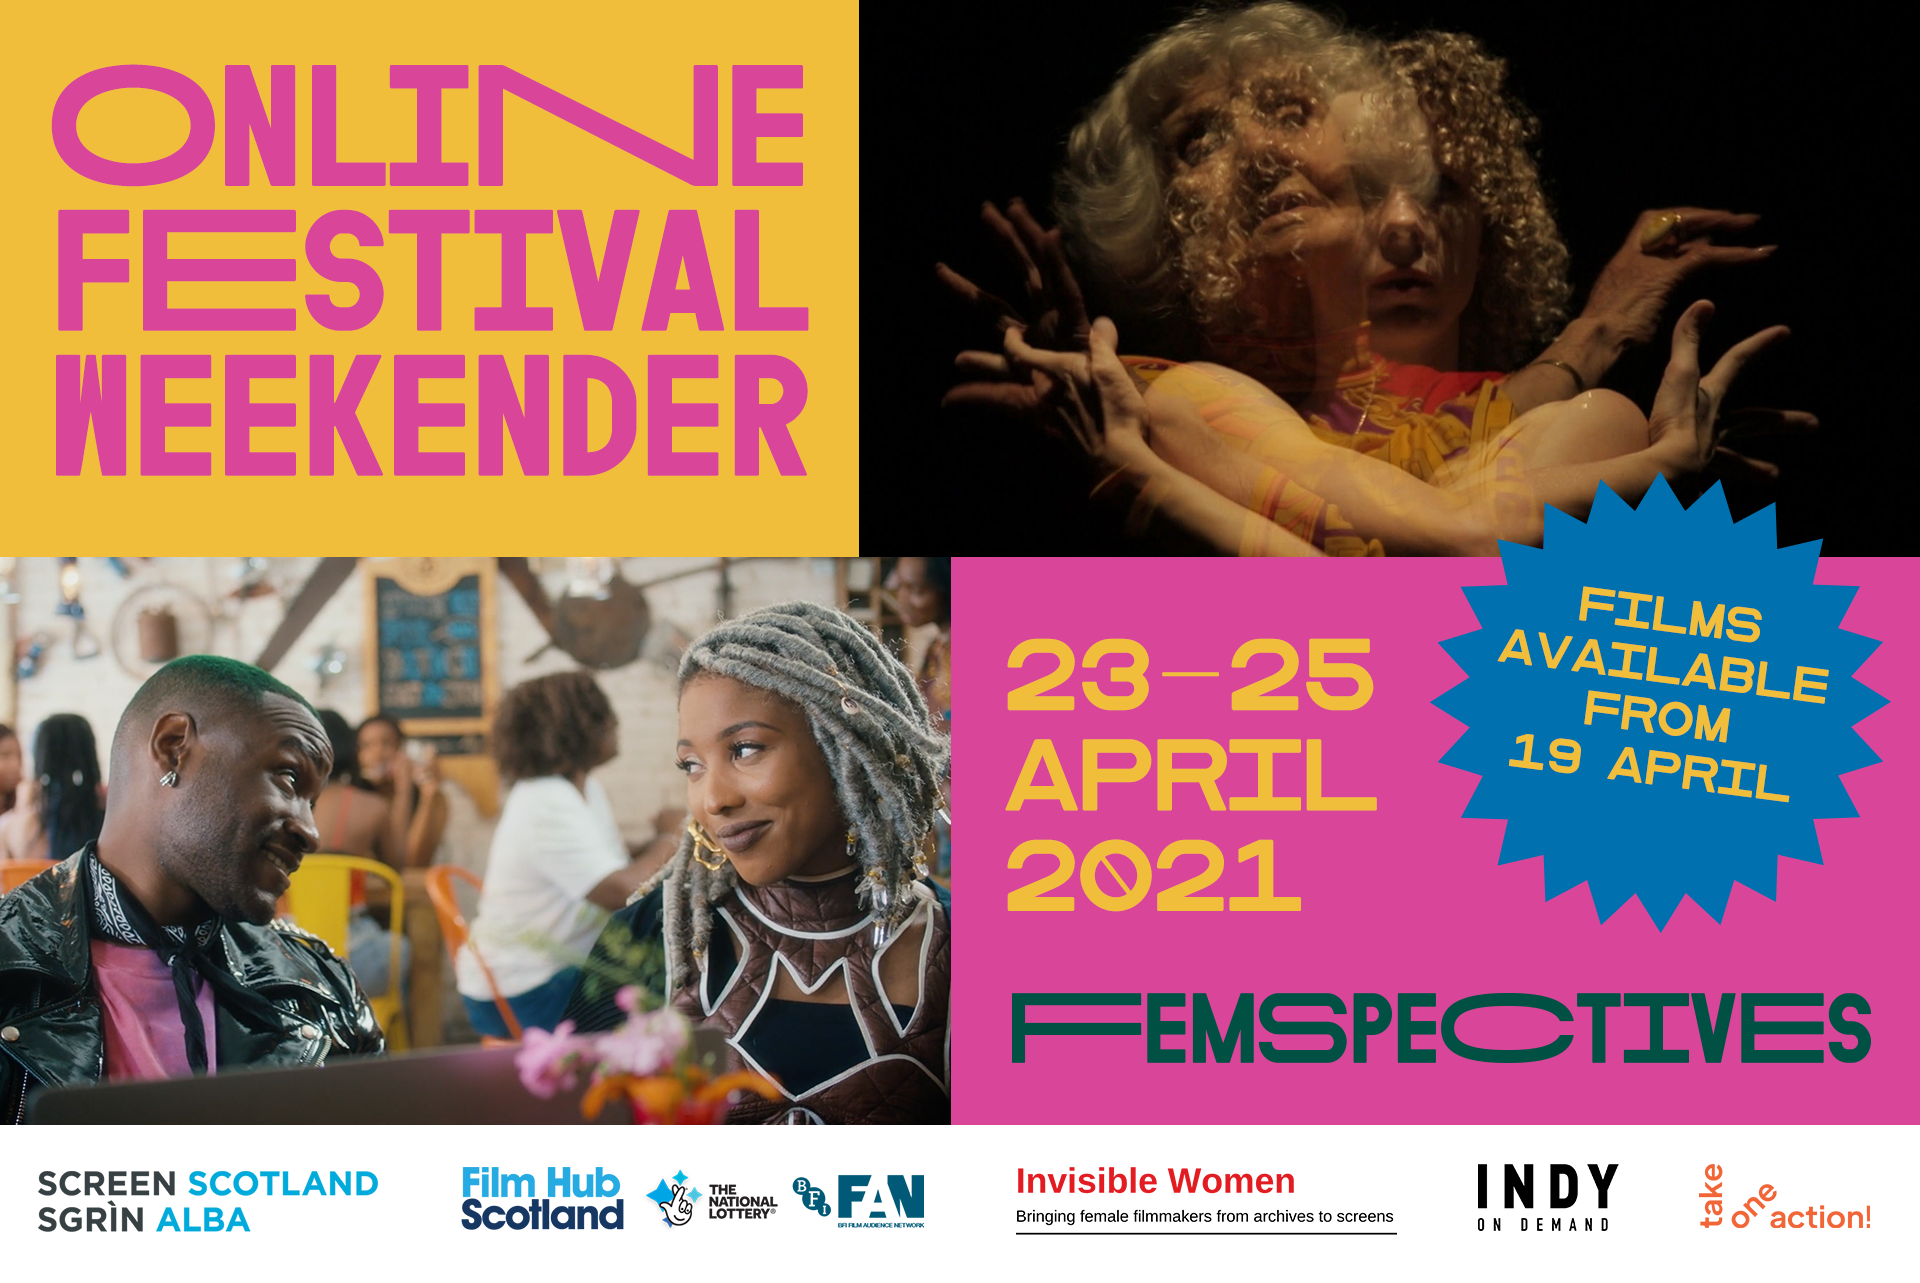 Poster for the 2021 Femspectives Glasgow Feminist Film Festival. It shows two film stills from The Euphoria of Being and Black Lady Goddess. The text on the poster says Online Festival Weekender, 23-25 April 2021, Films available from 19 April. Funder and partner logos are listed at the bottom.